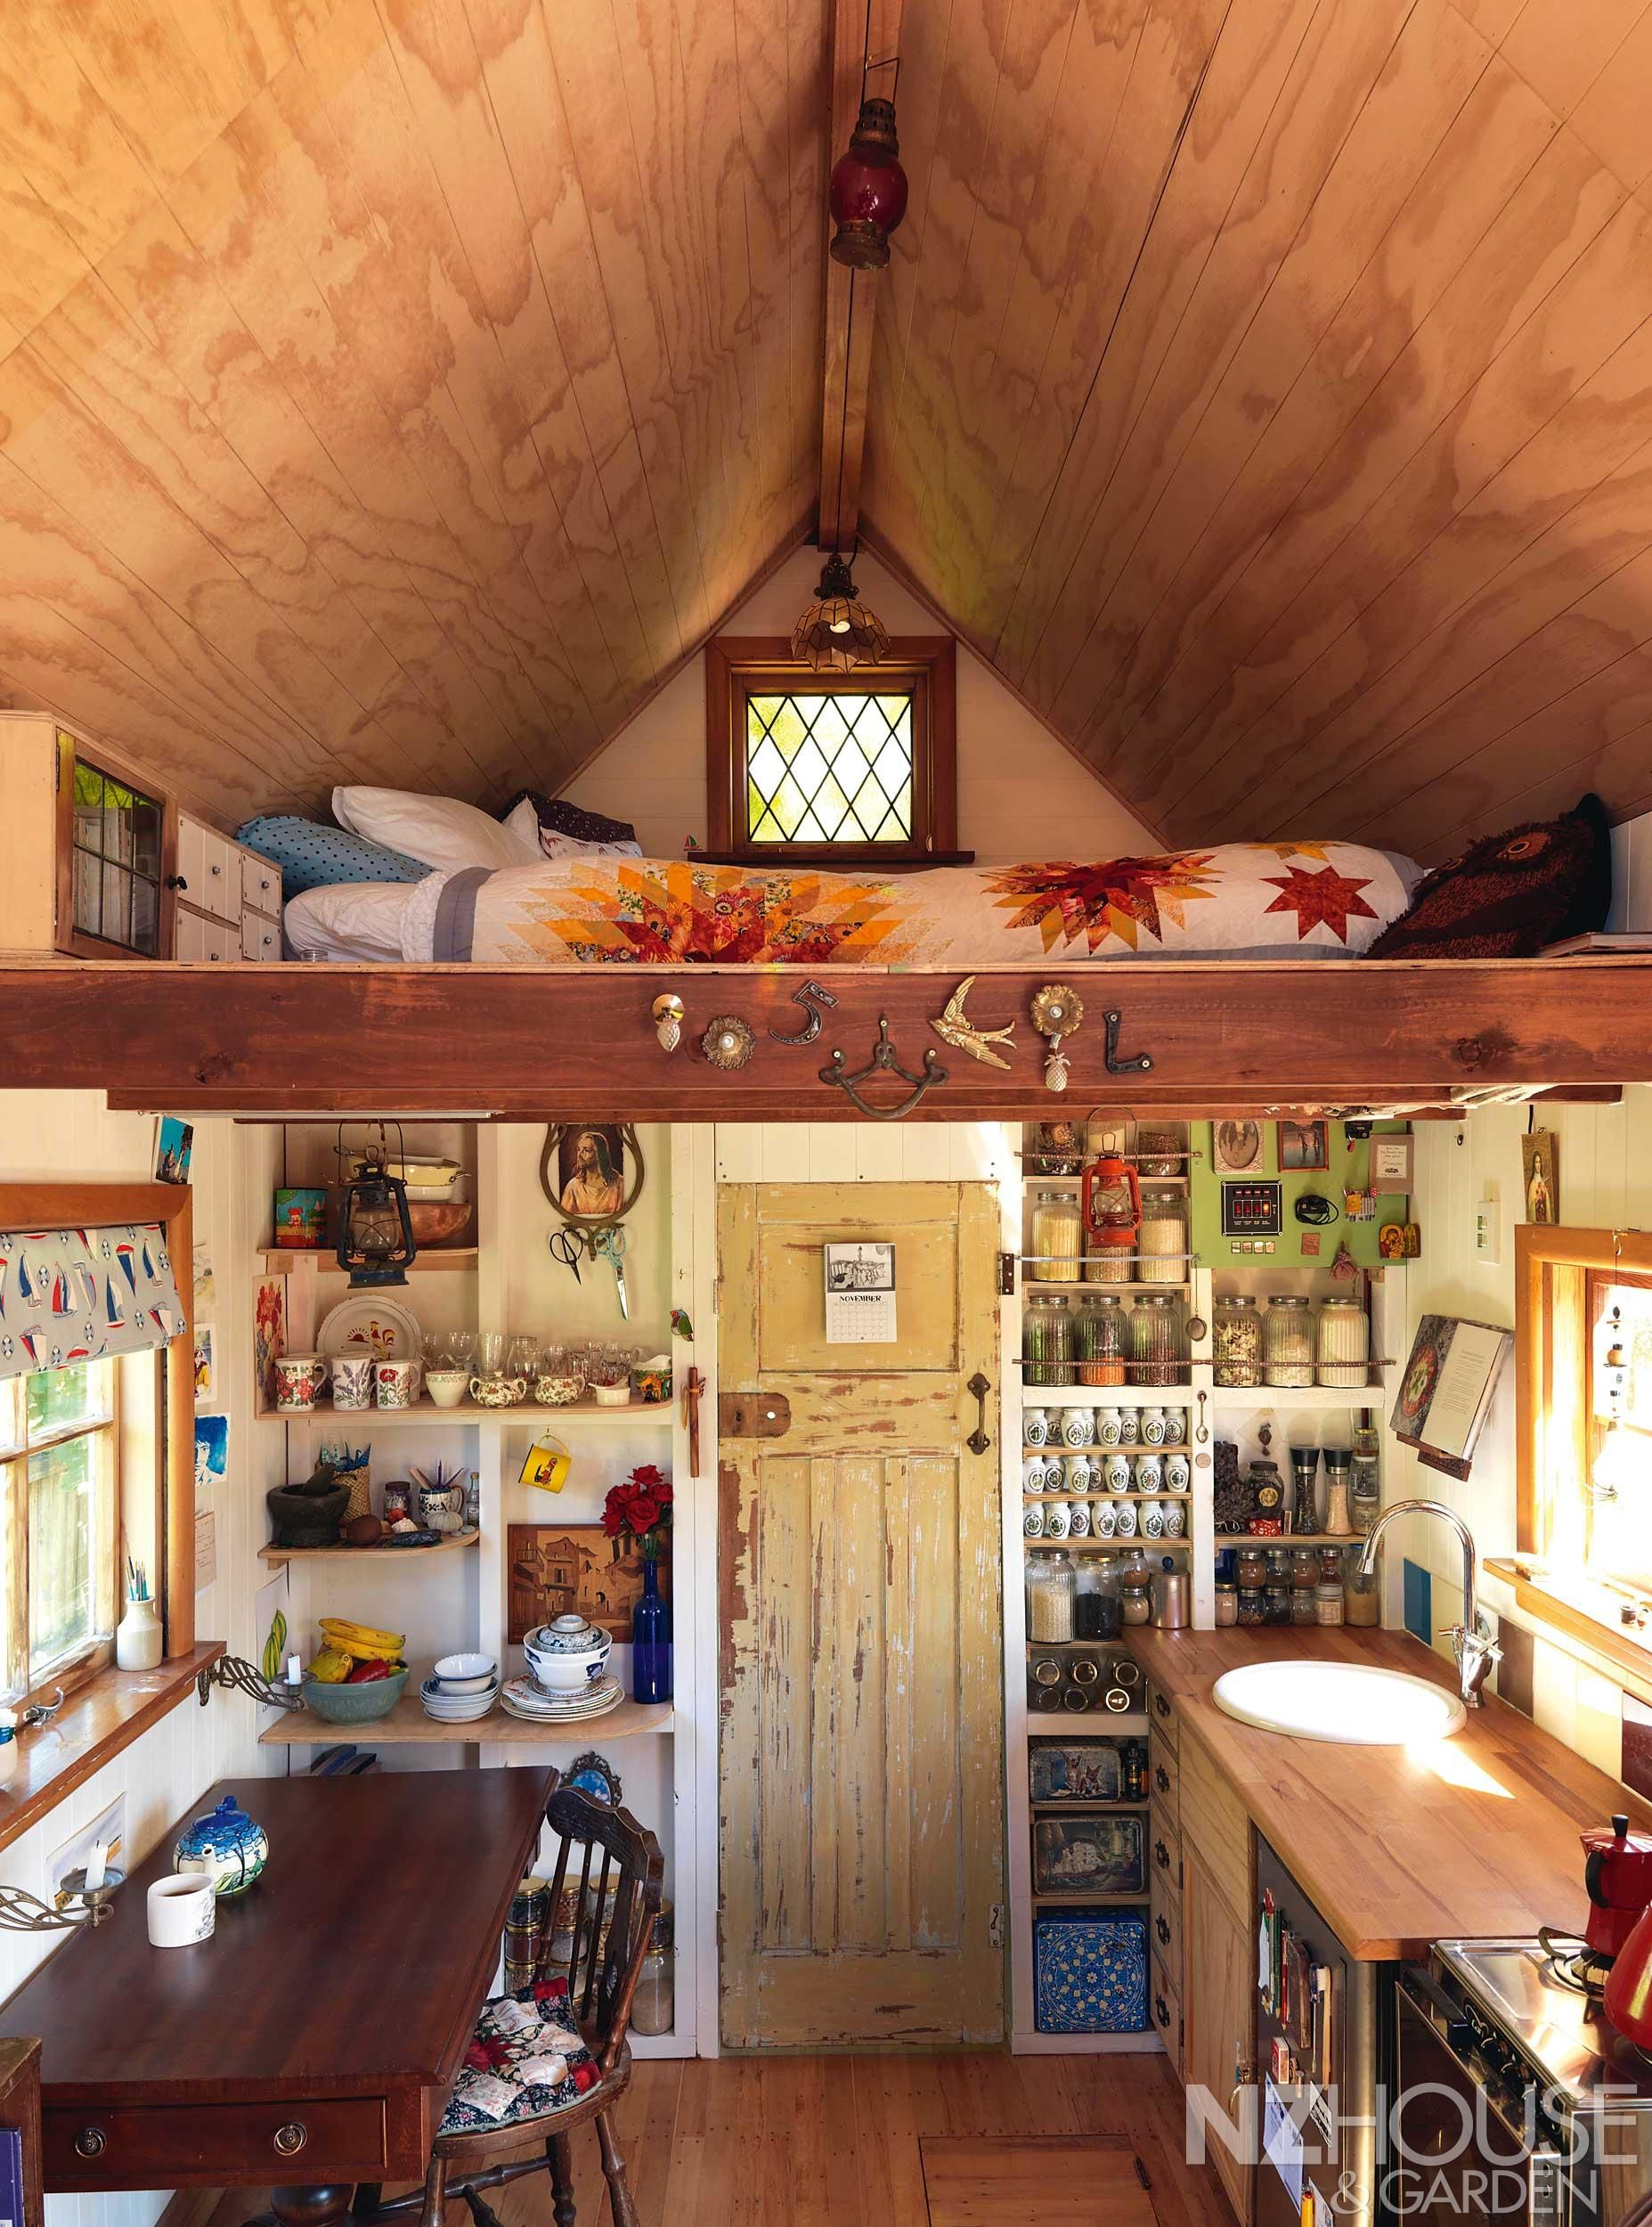 Lily Duval's tiny house in Christchurch, New Zealand  공간/디자인/아이템 ...